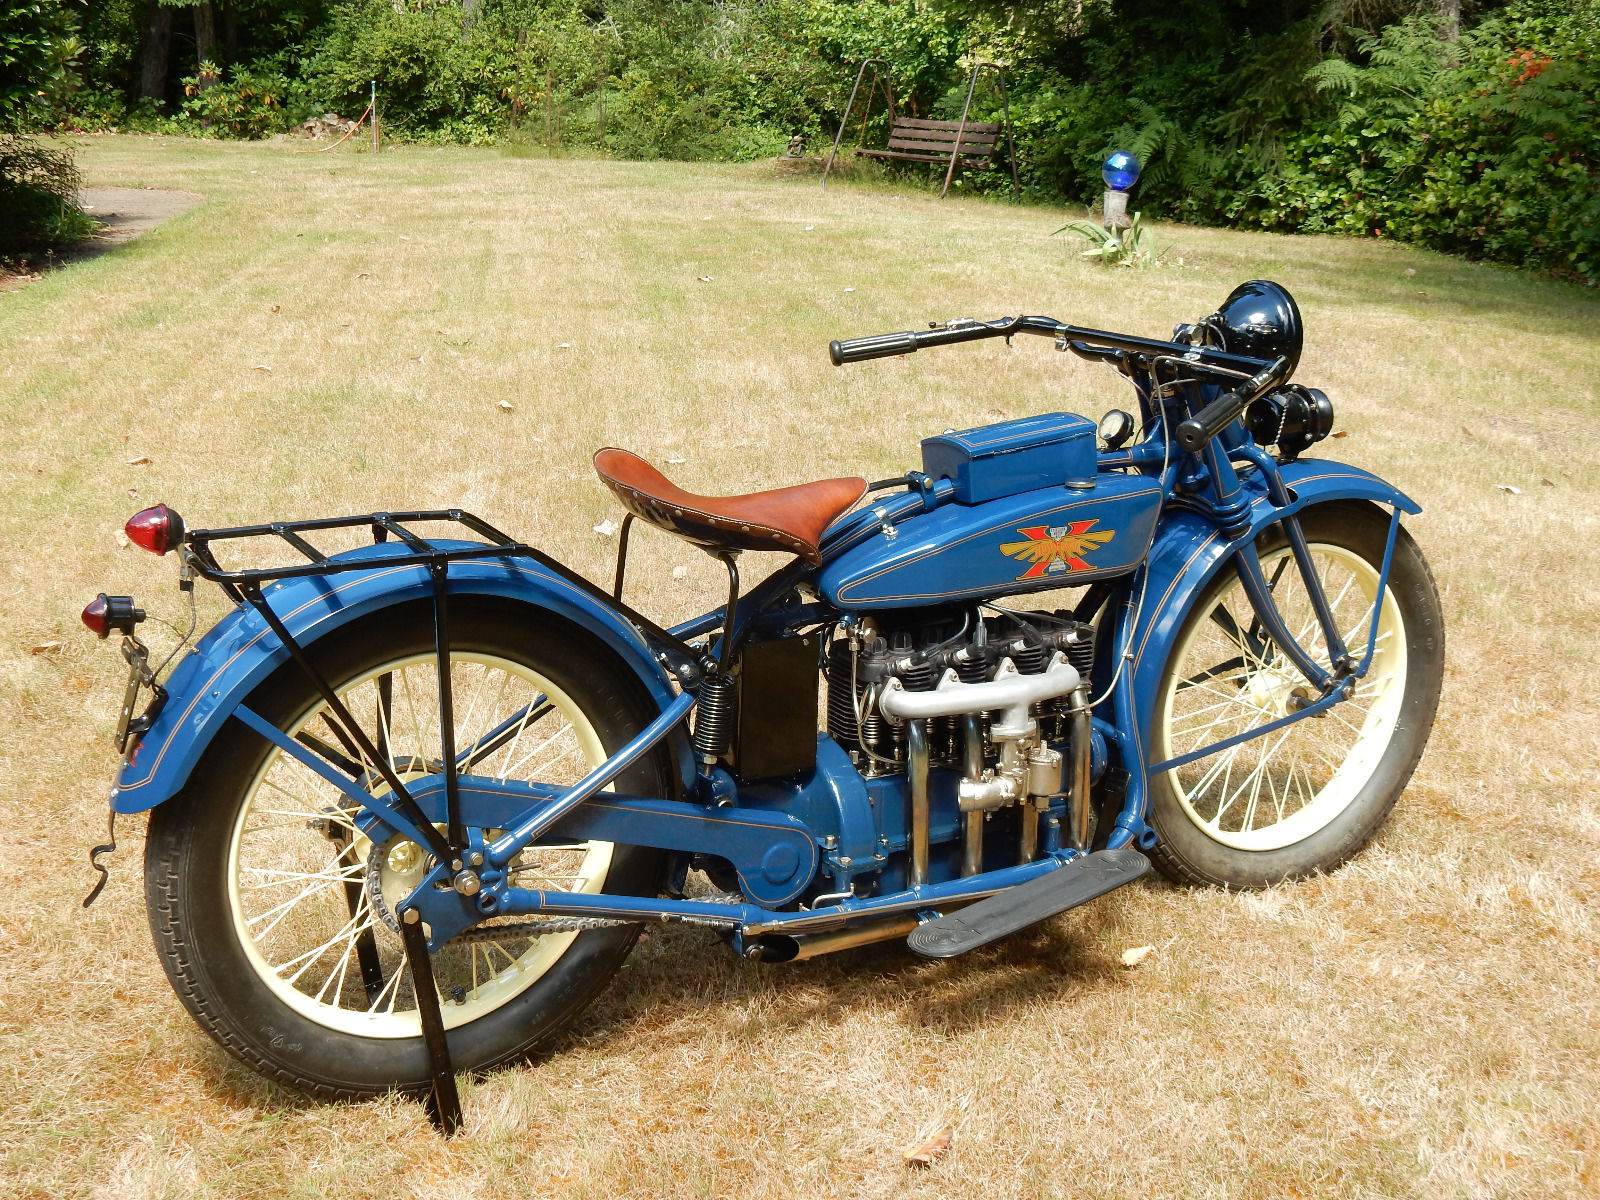 With its in-line four cylinder engine the Henderson must have been an impressive looking motorcycle back in the twenties. (Picture courtesy eBay).